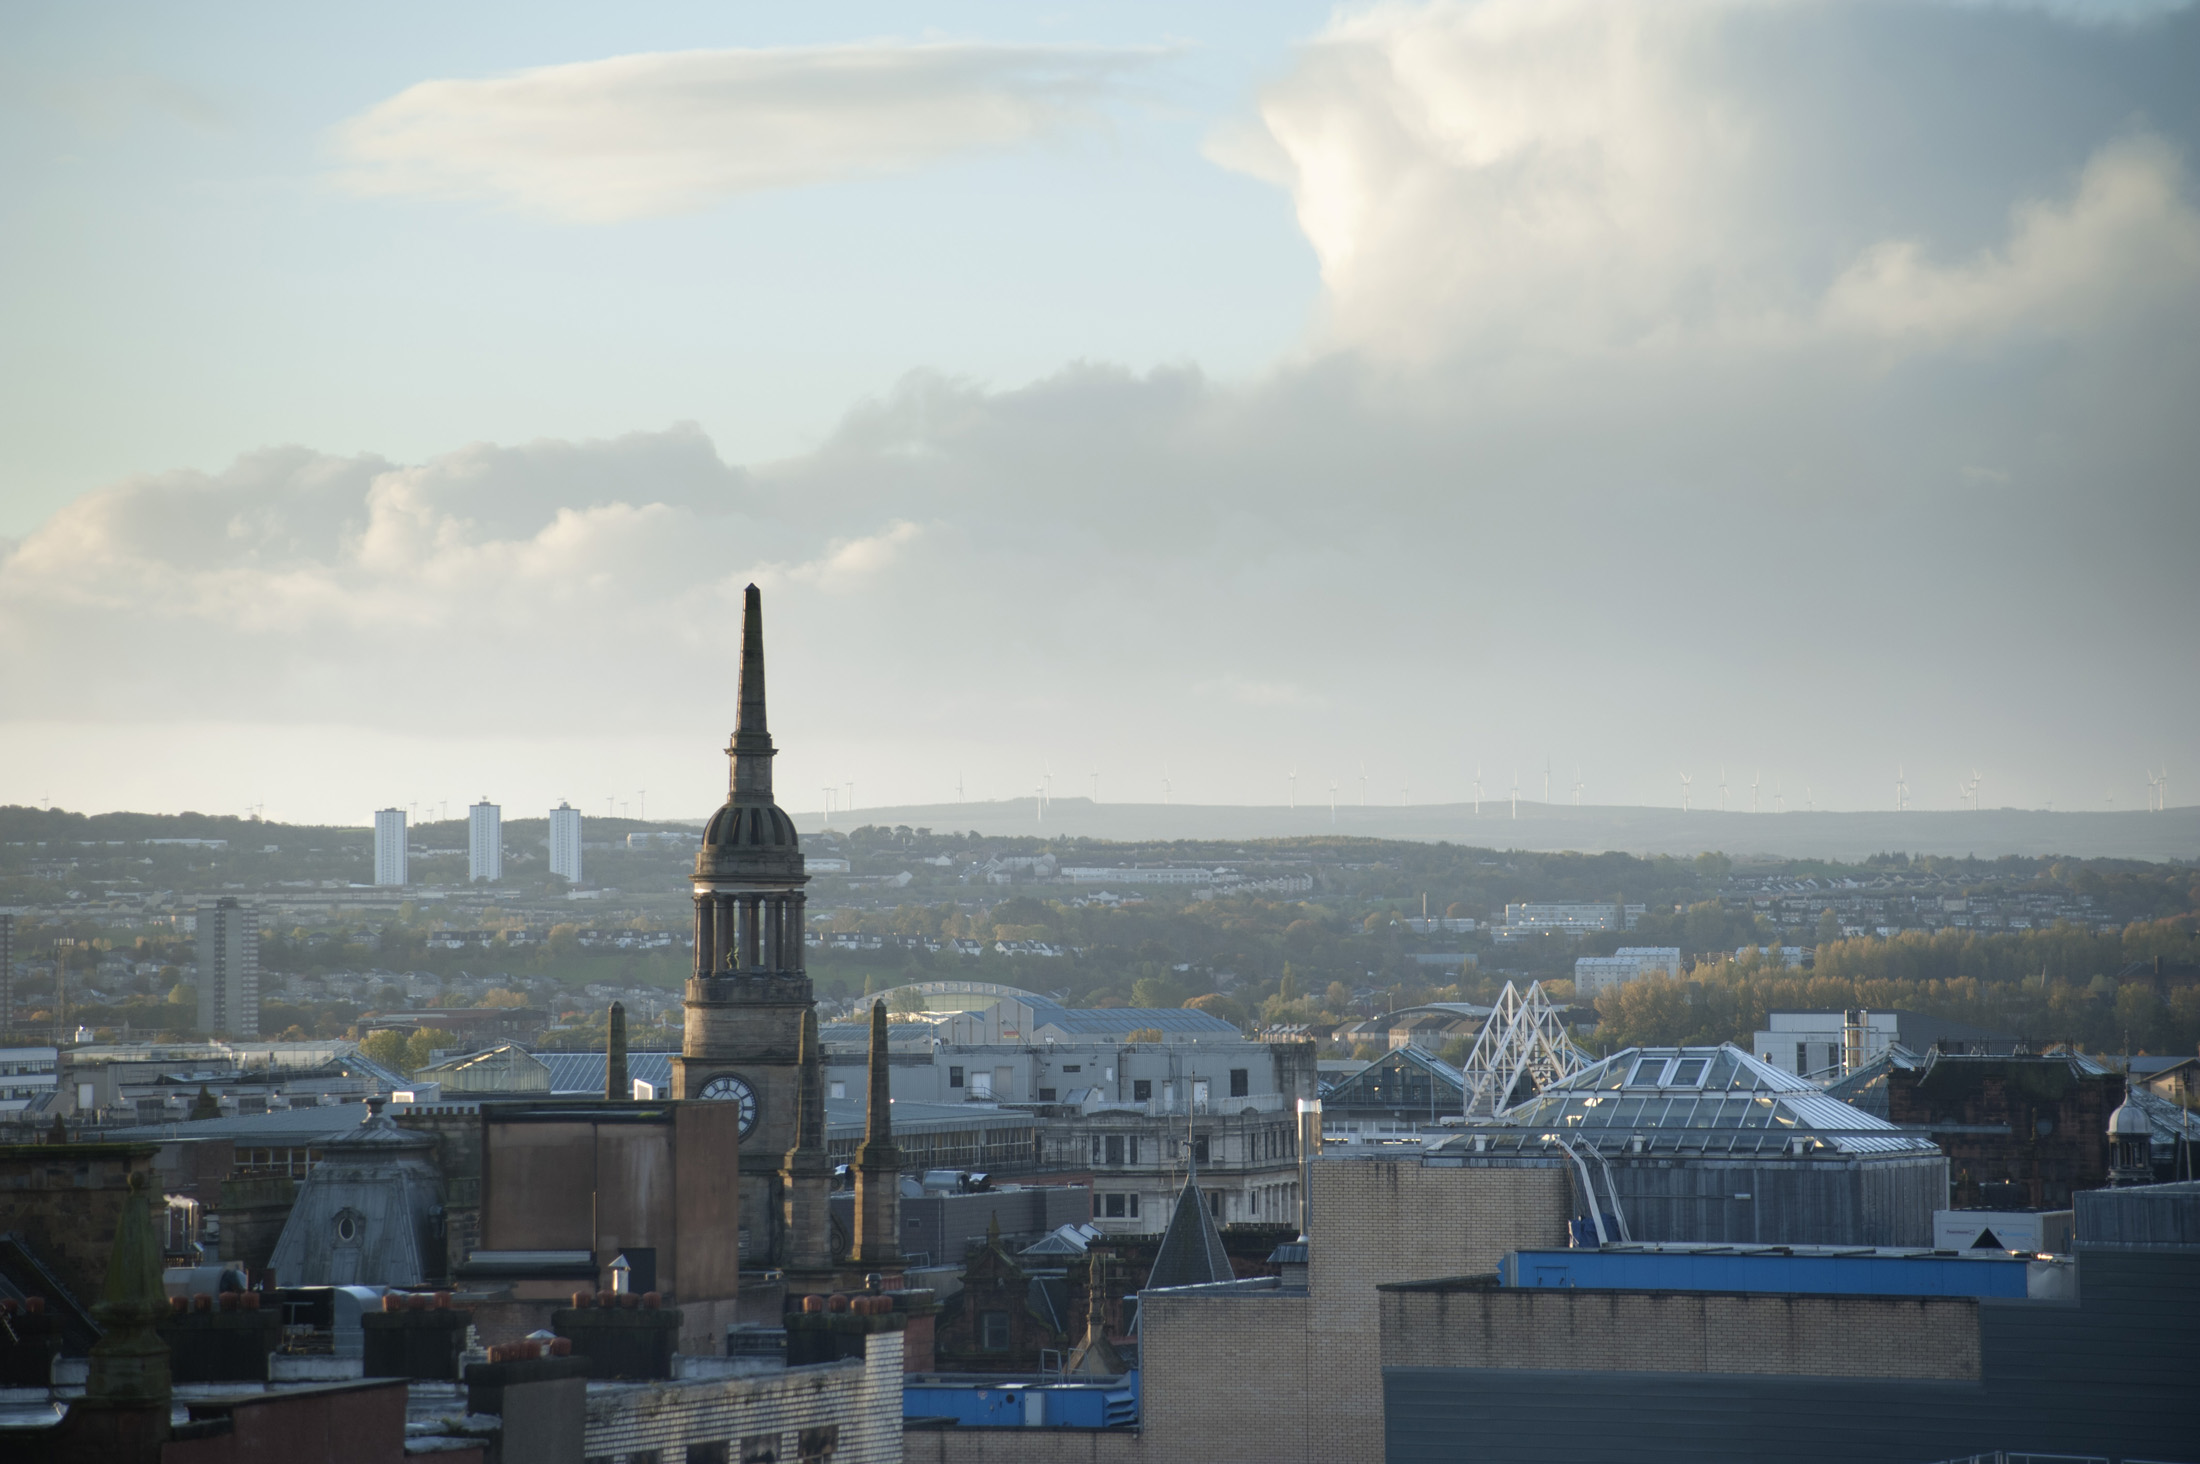 Glasgow skyline with a view across the rooftops of the city on a cloudy day